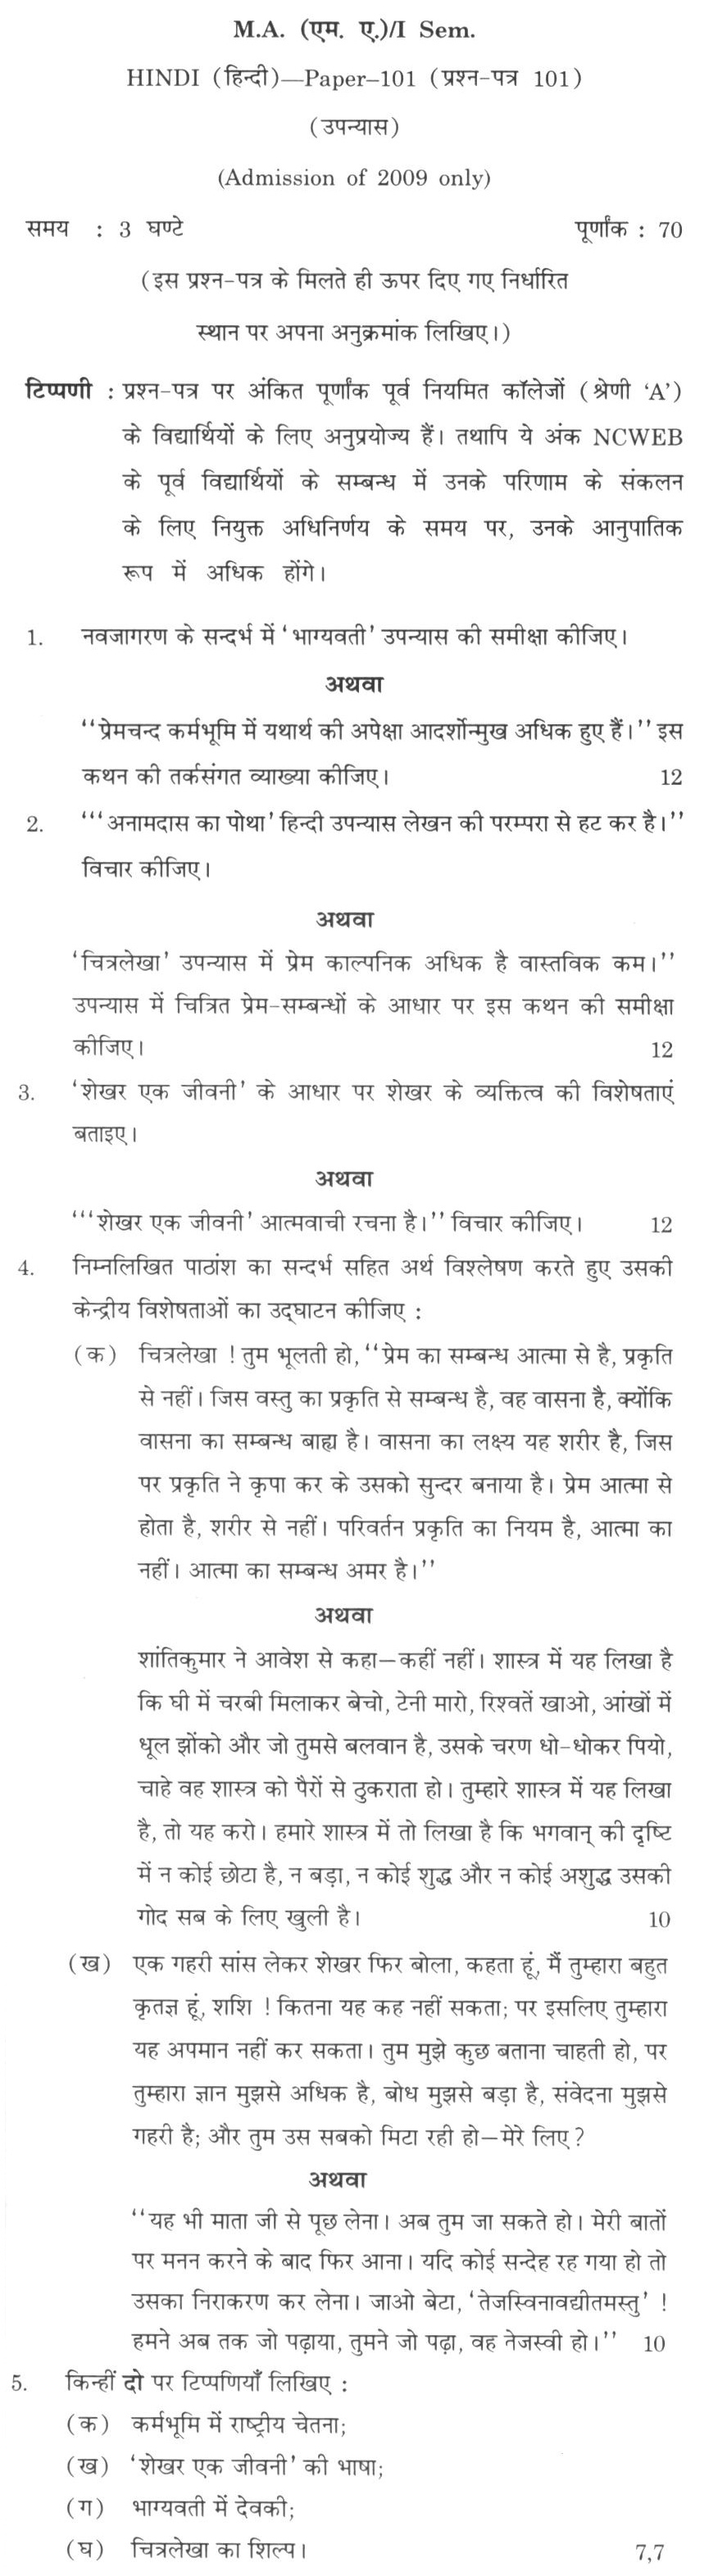 DU SOL M.A. Hindi Question Paper - I Semester Upanyas - Paper 101